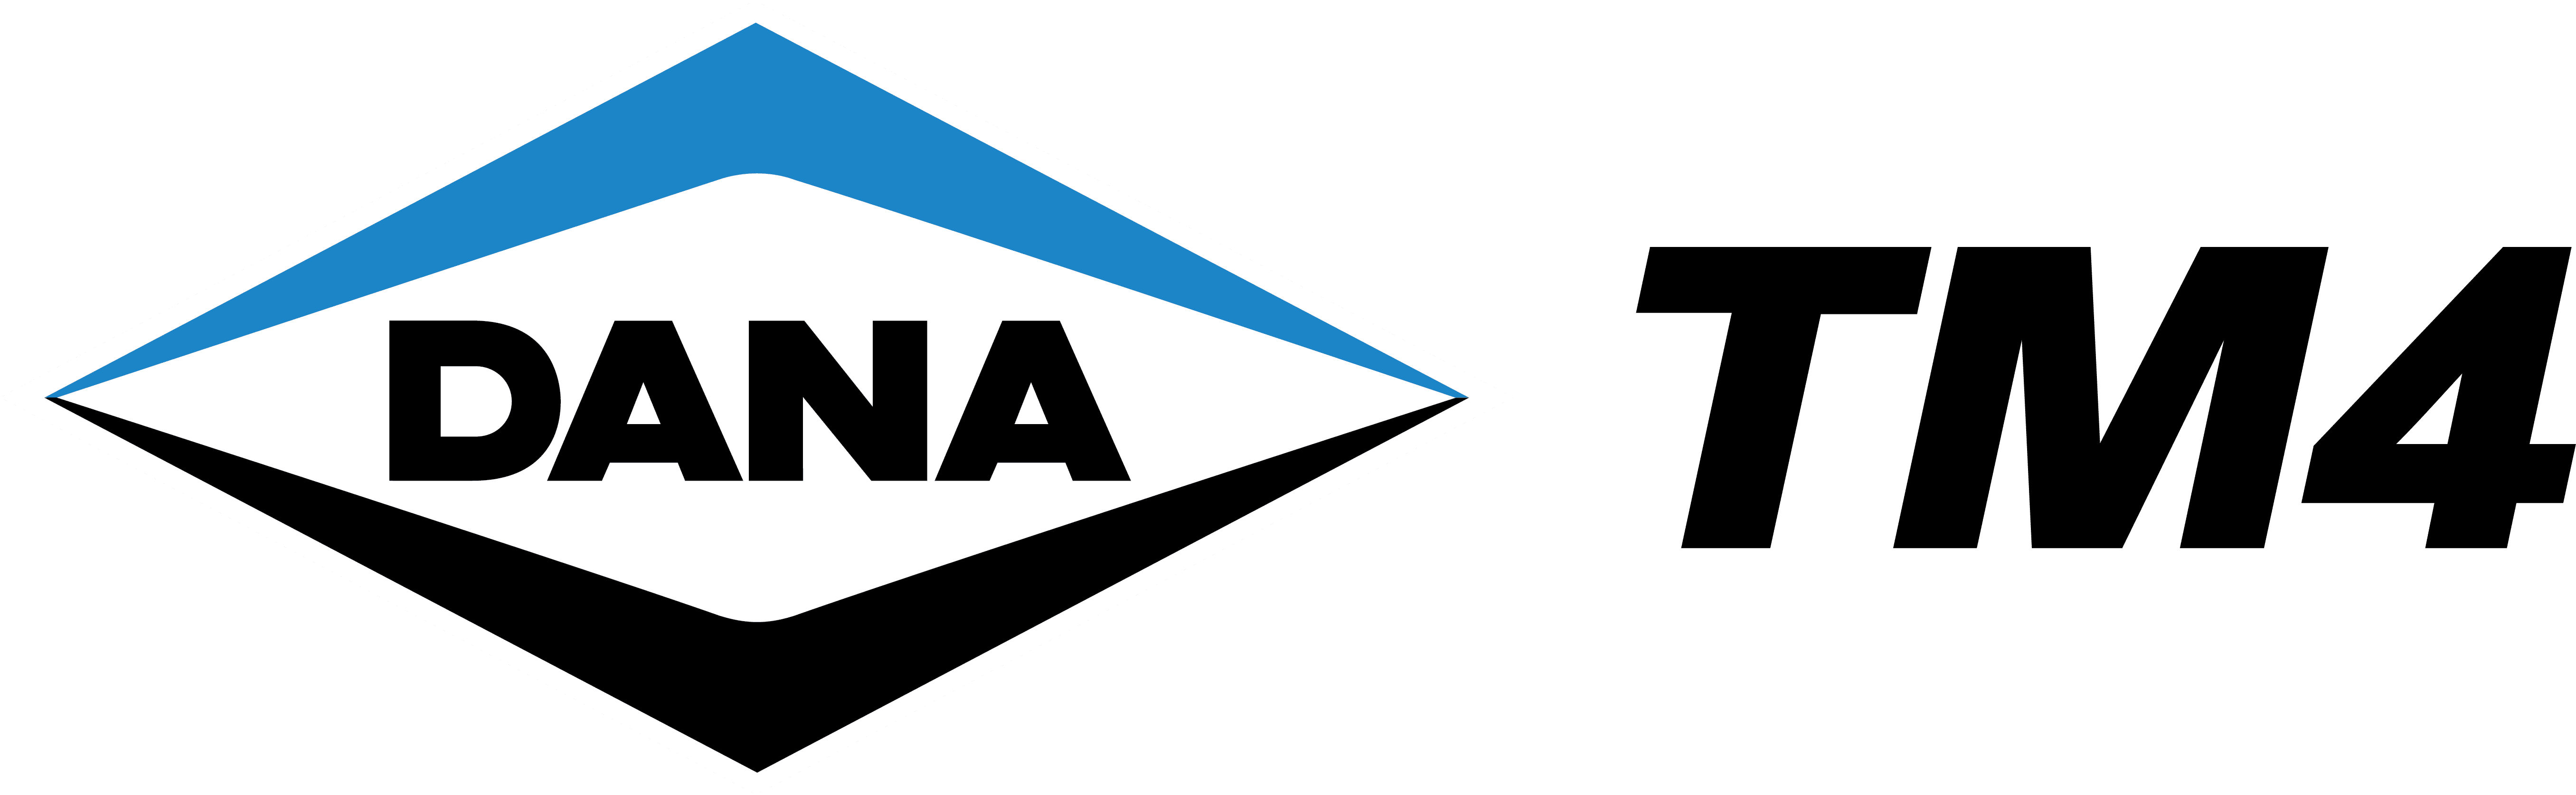 Dana TM4 Inc.